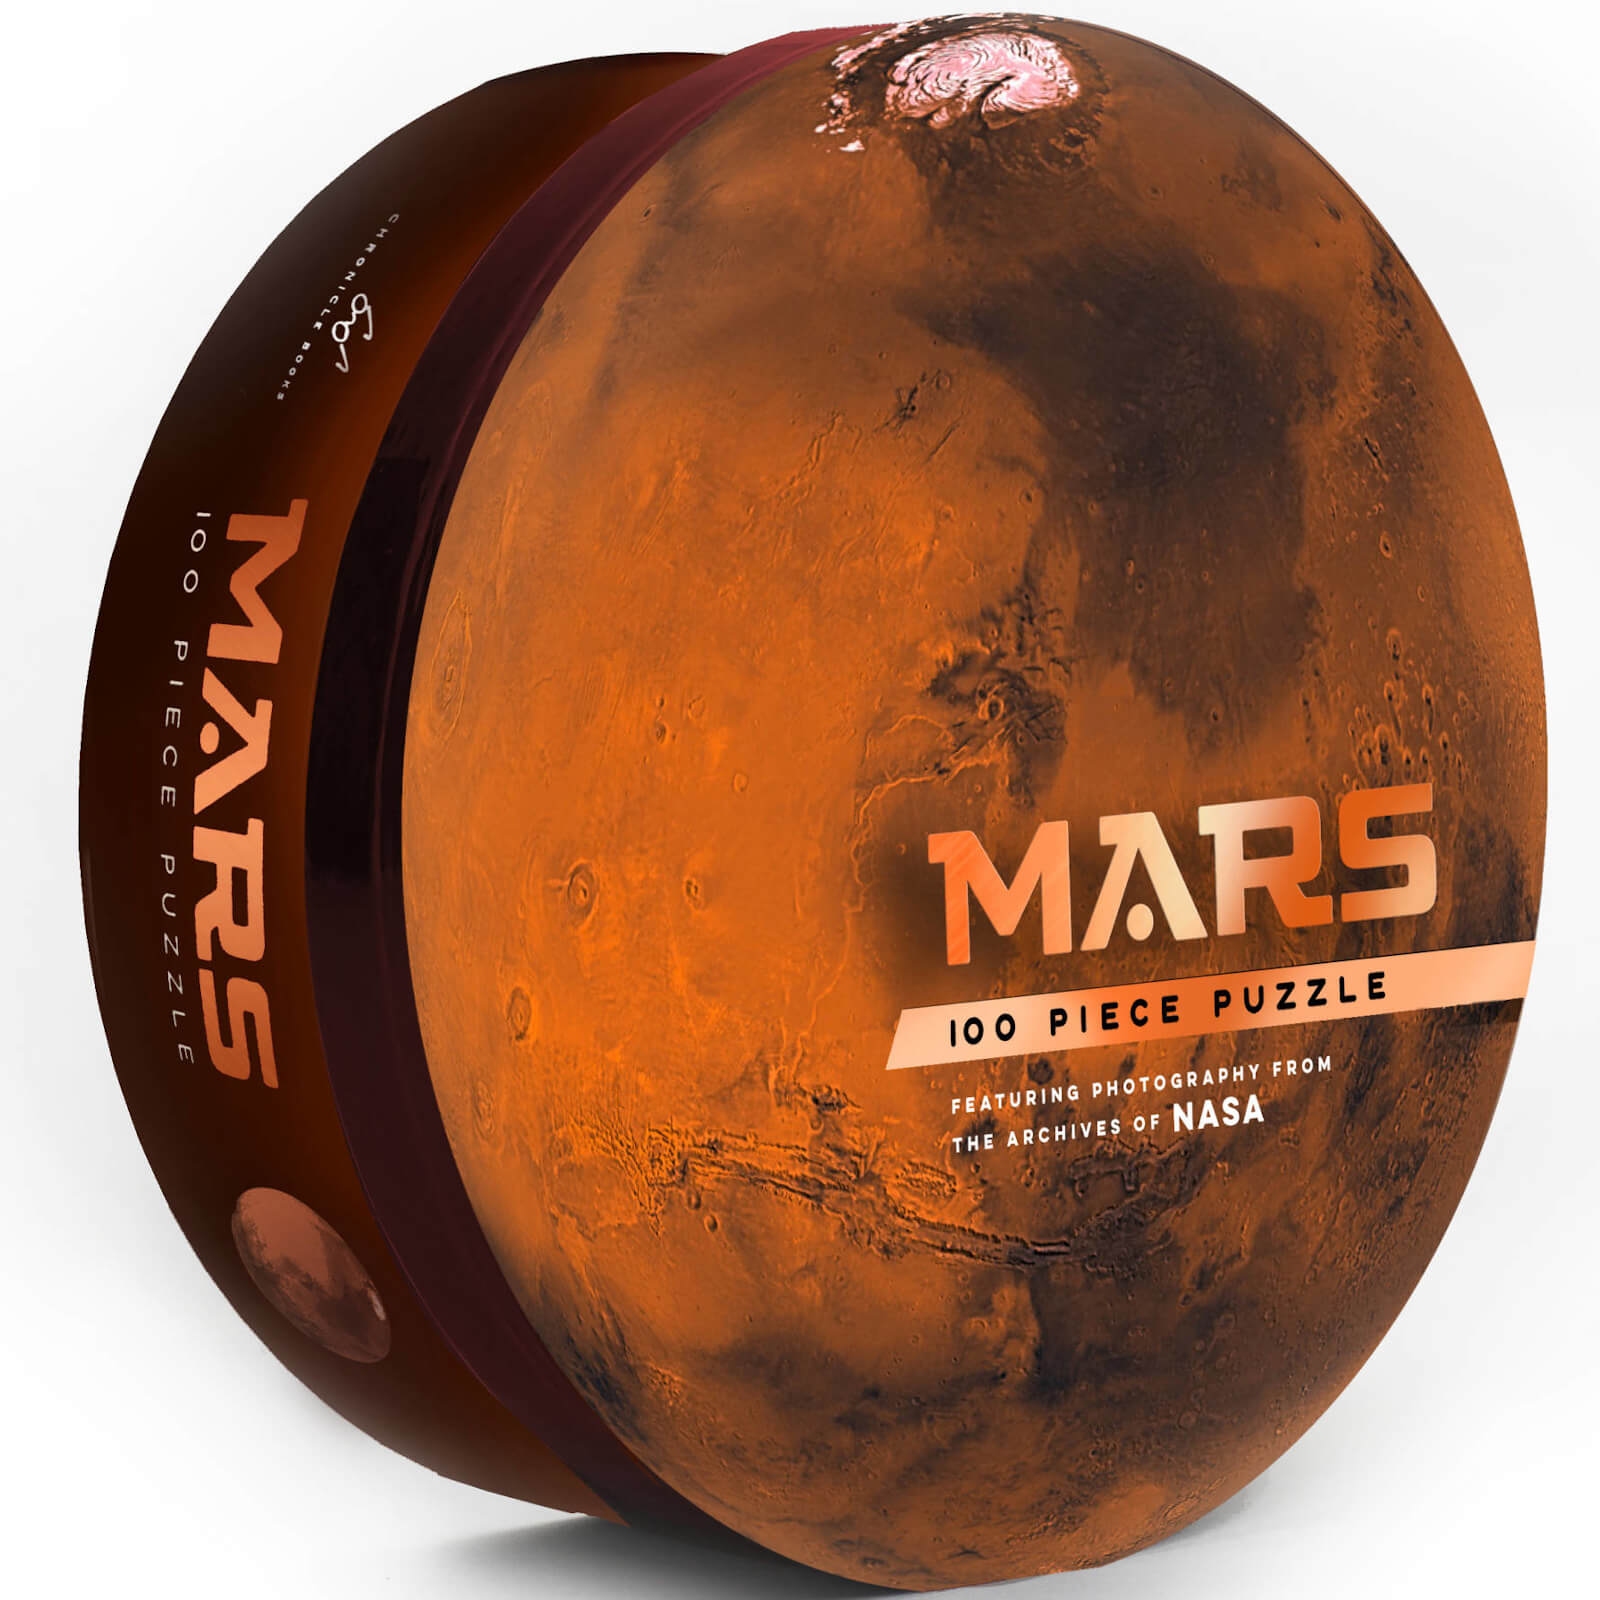 Image of Mars 100 Piece Puzzle